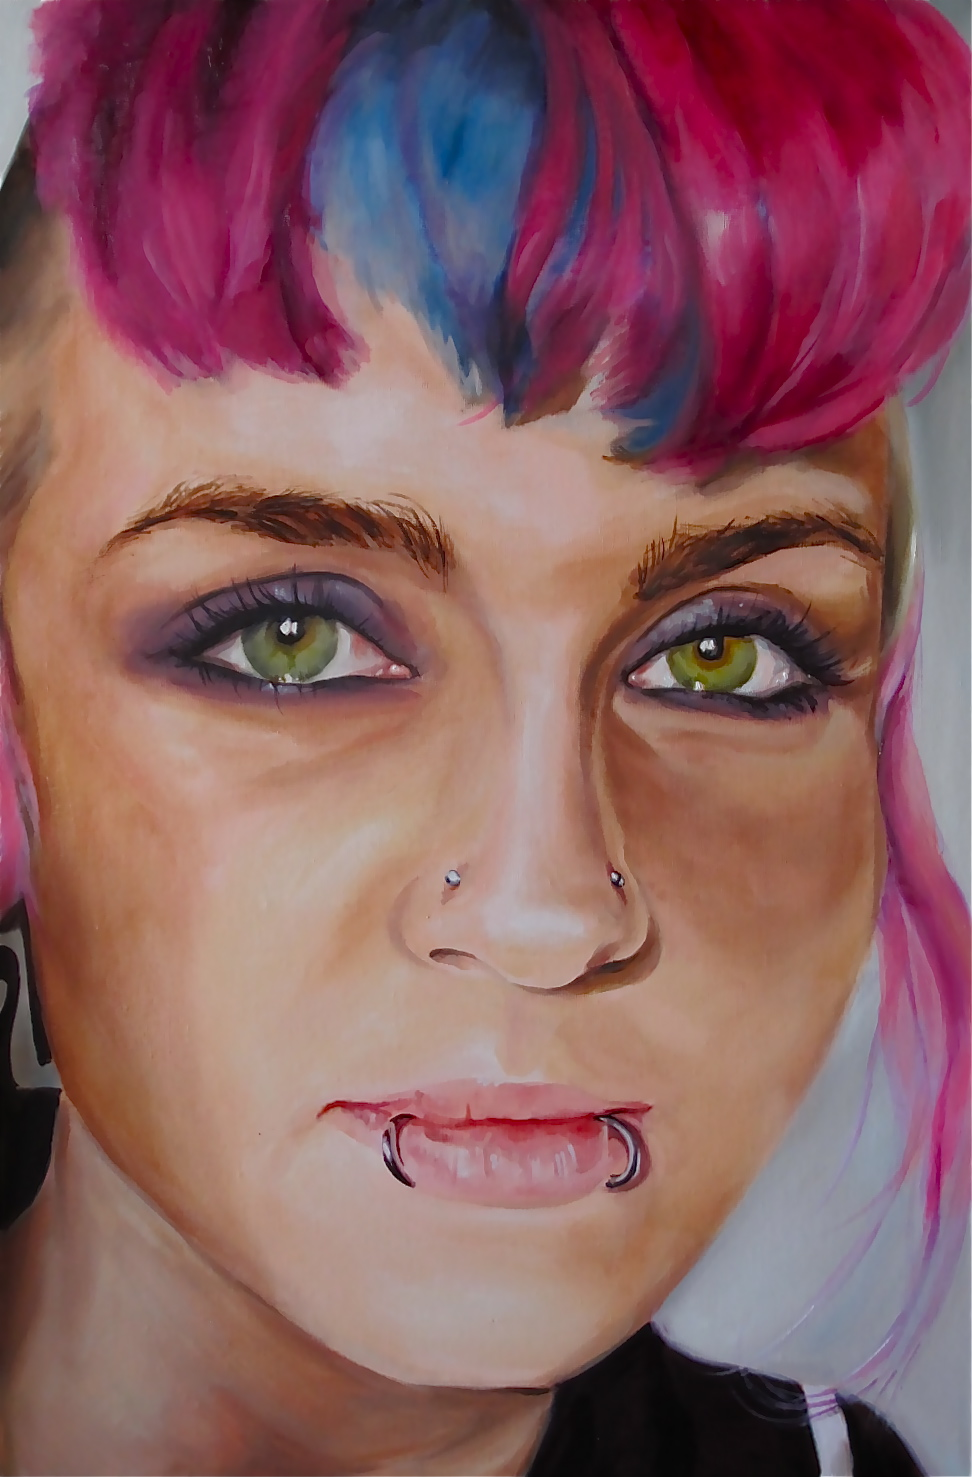 "Layla 36 x 24"" oil on linen 2013"